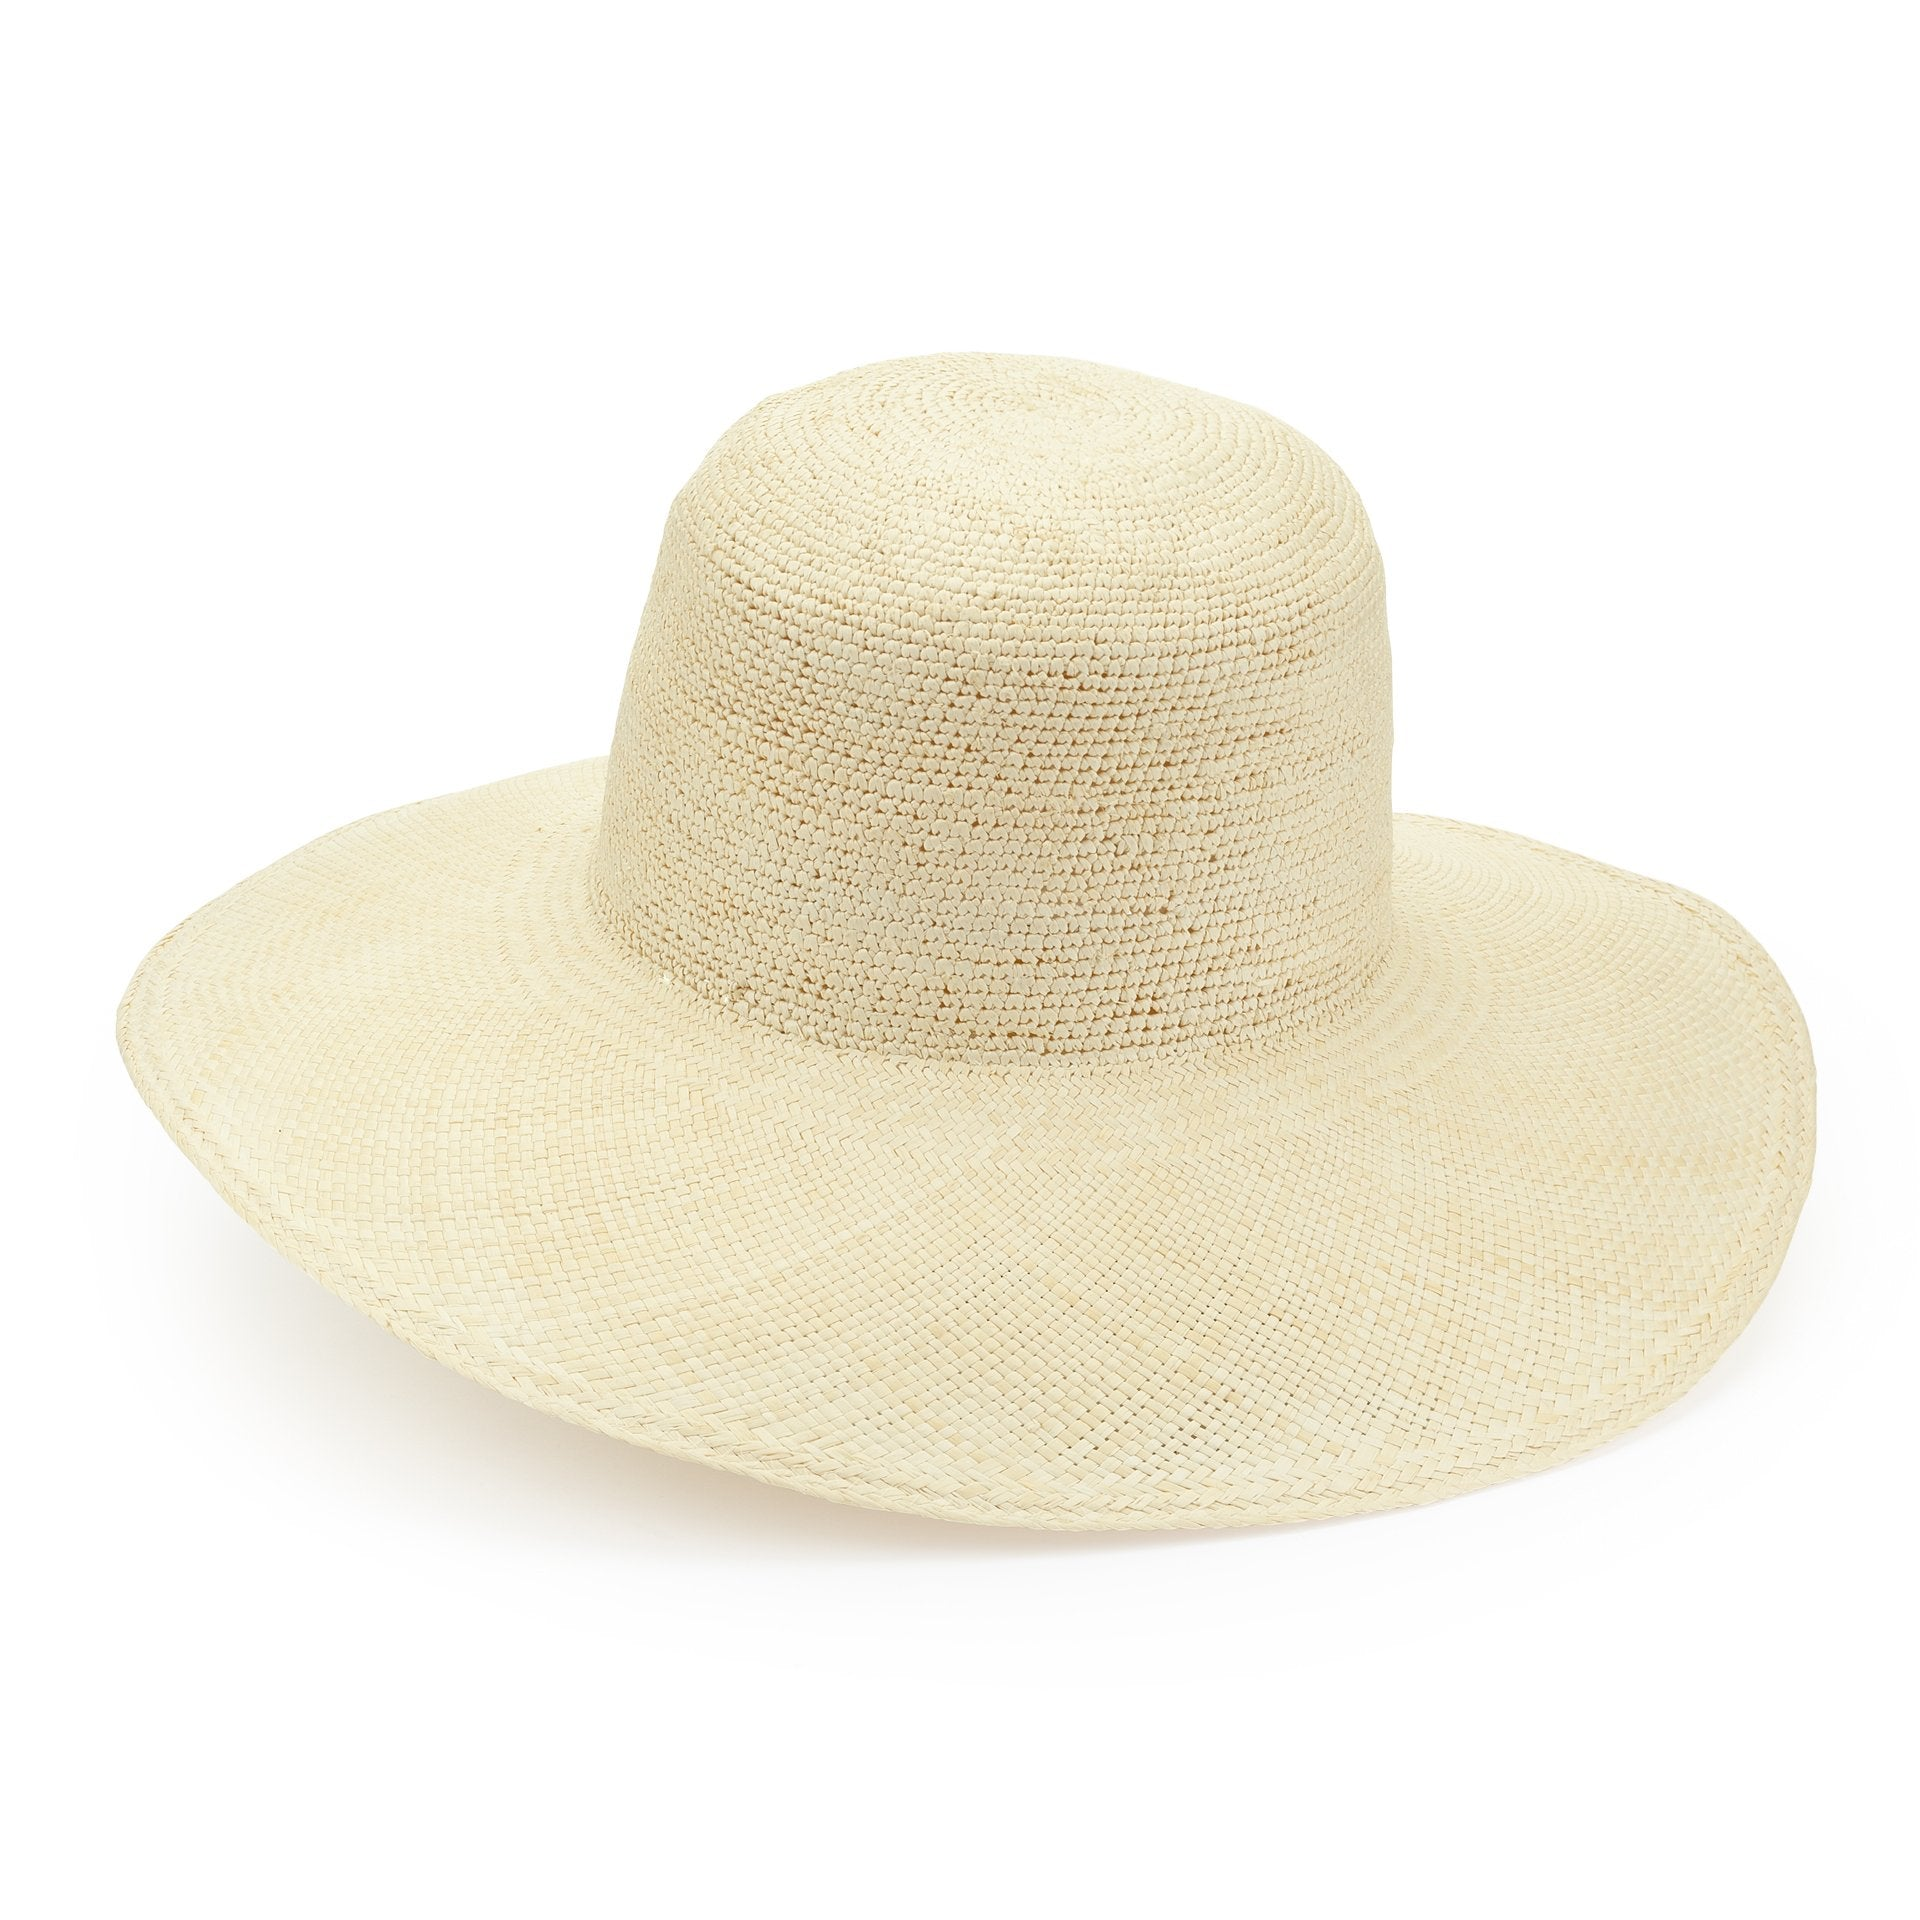 Lucille Sun hat - Panamas, Straw and Sun Hats for Women - Lock & Co. Hatters London UK